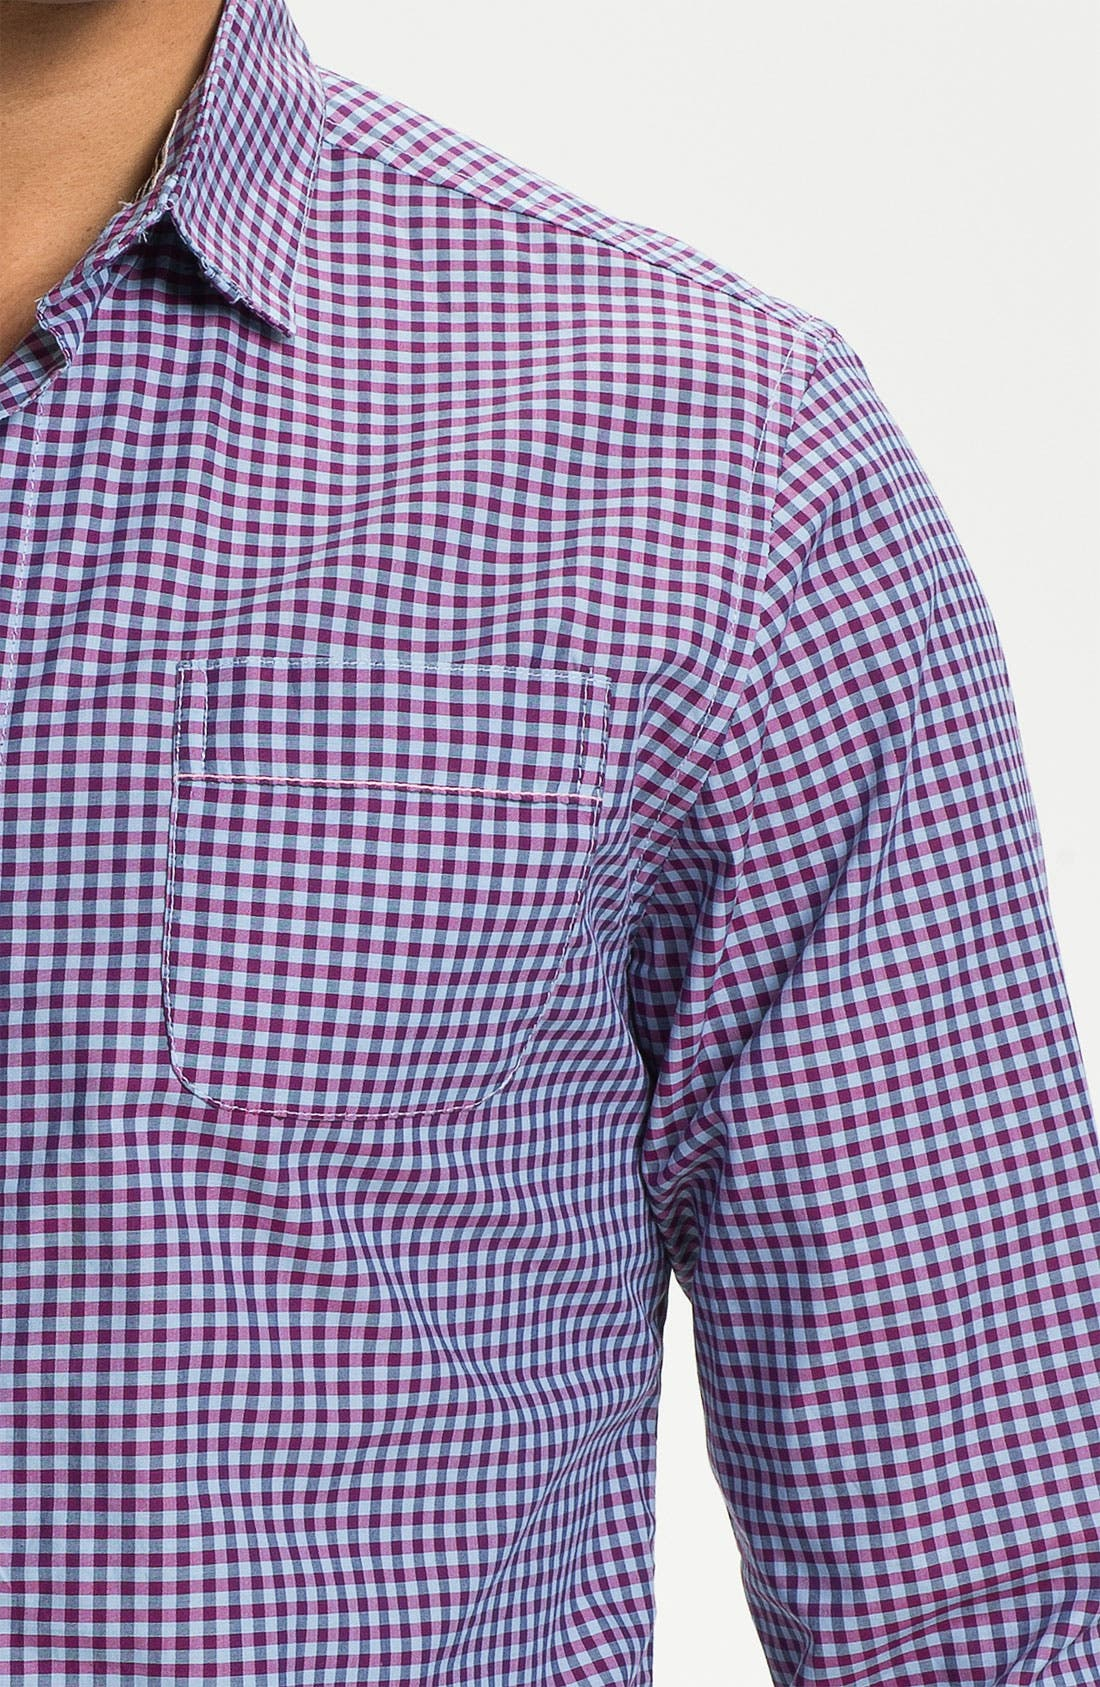 Alternate Image 3  - Descendant of Thieves Gingham Shirt